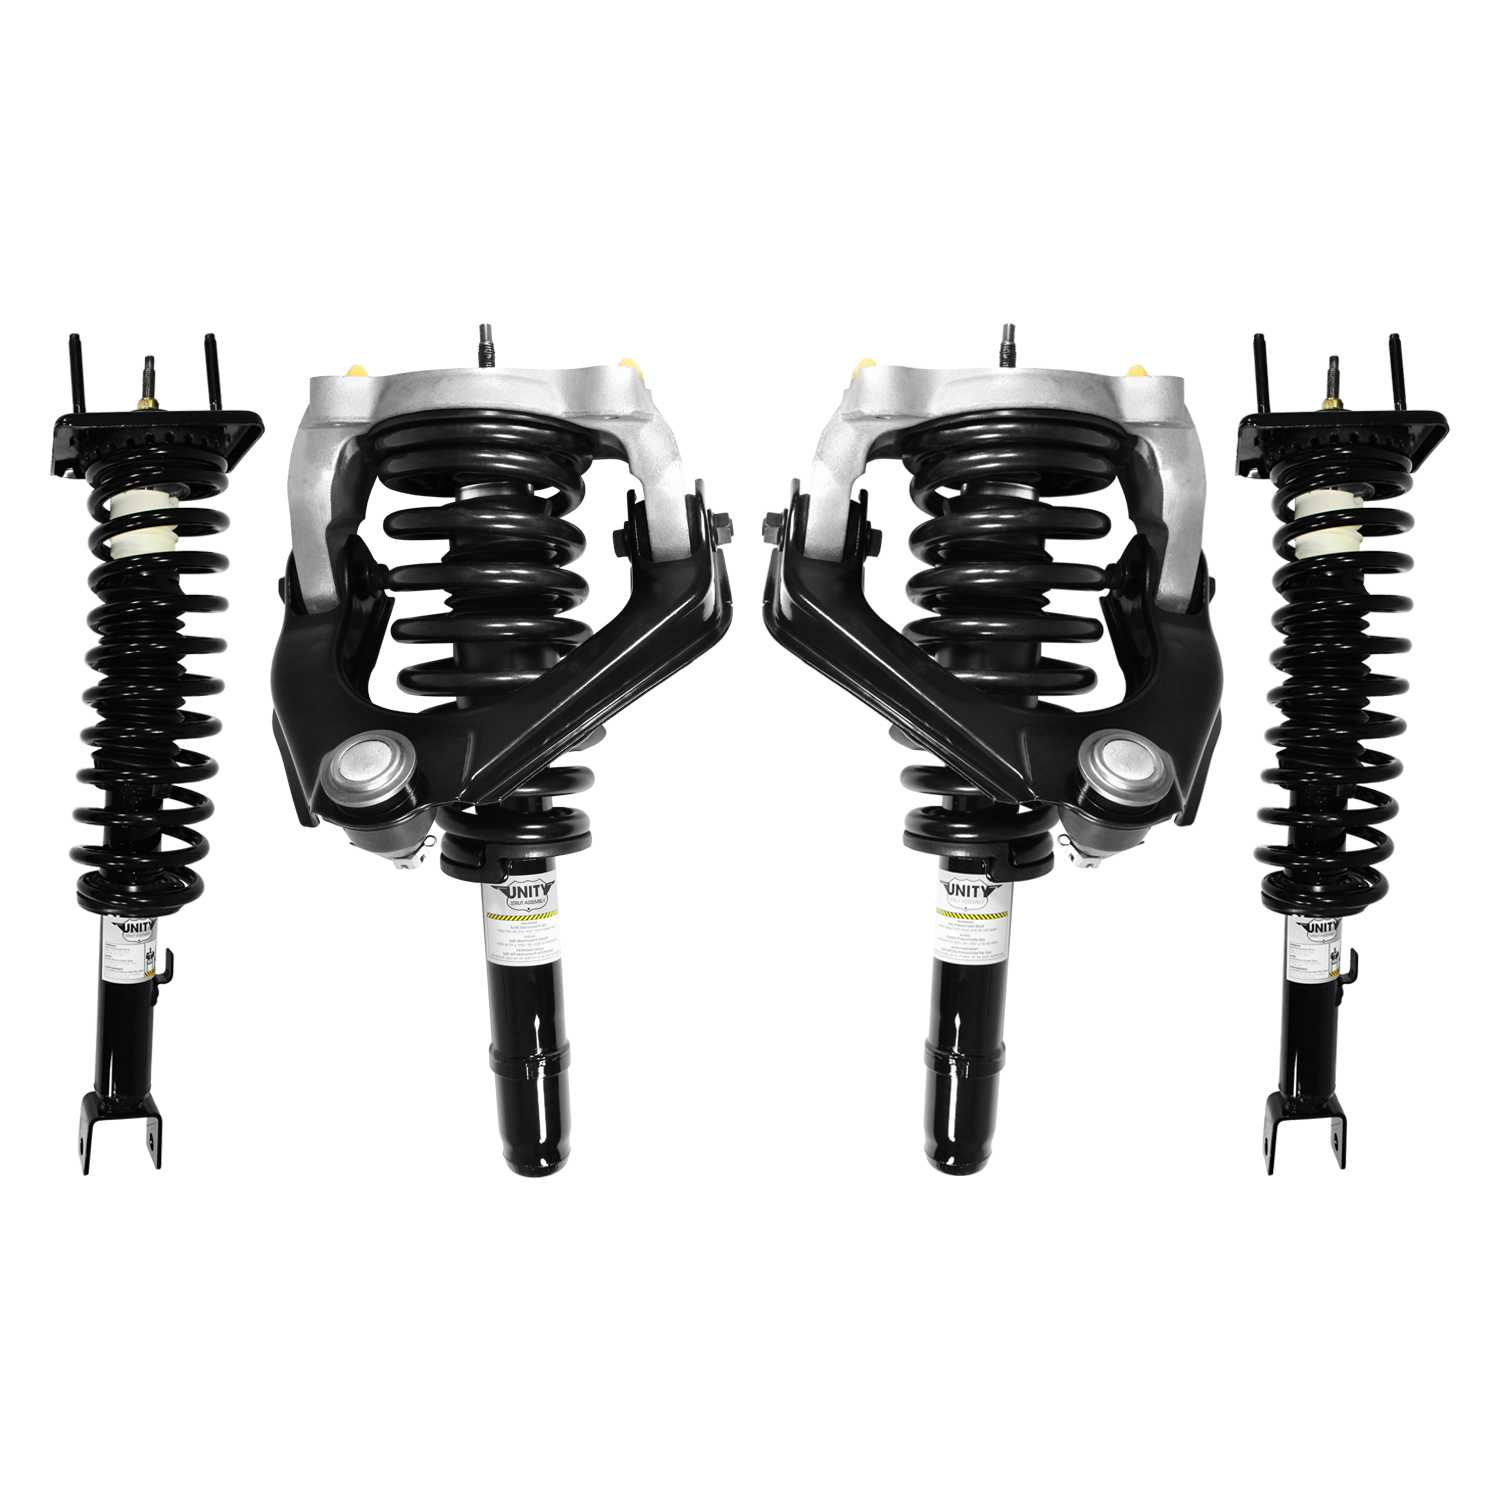 hight resolution of unity 4 11651 15384 001 front and rear 4 wheel complete strut assembly kit 1999 2000 chrysler sebring convertible only walmart com